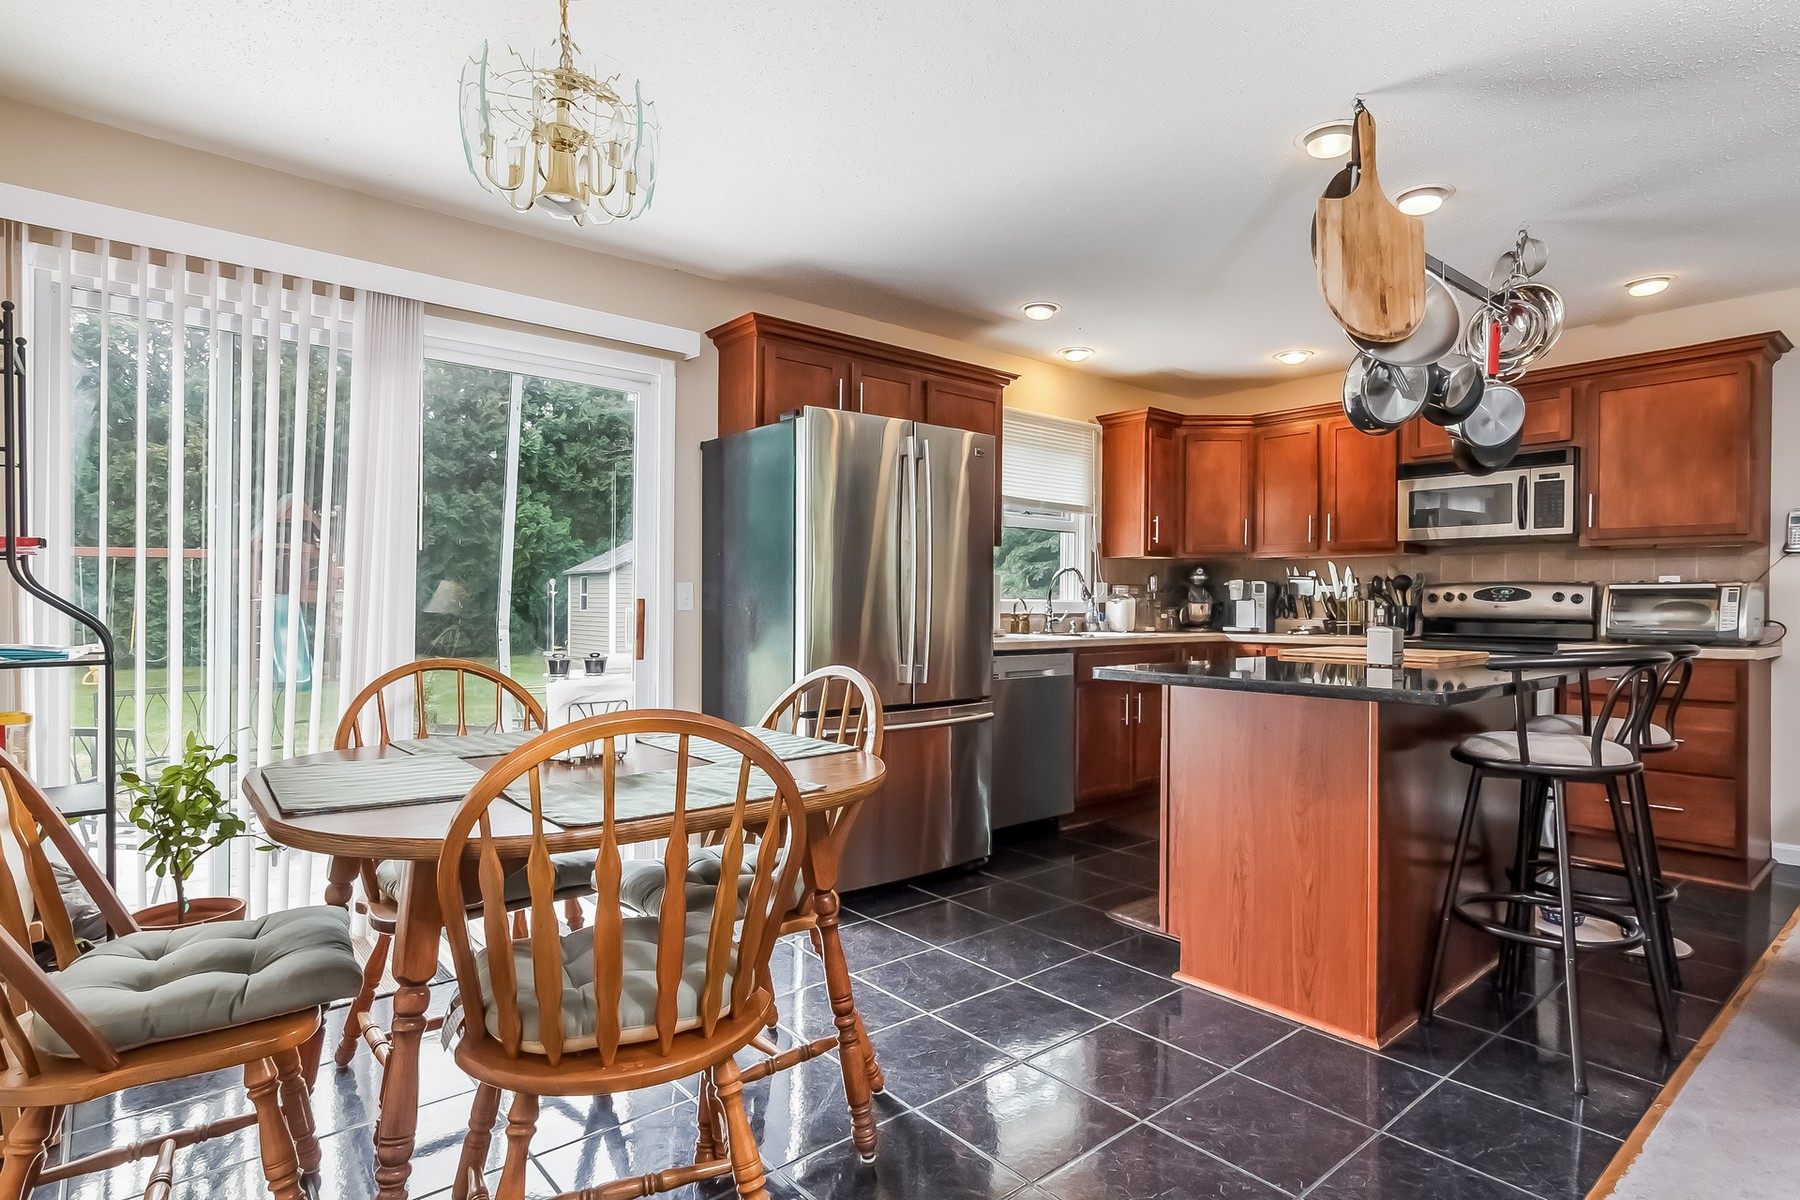 Single Family Home for Sale at Move In Ready Ranch 4 Filosi Rd. East Lyme, Connecticut, 06333 United States